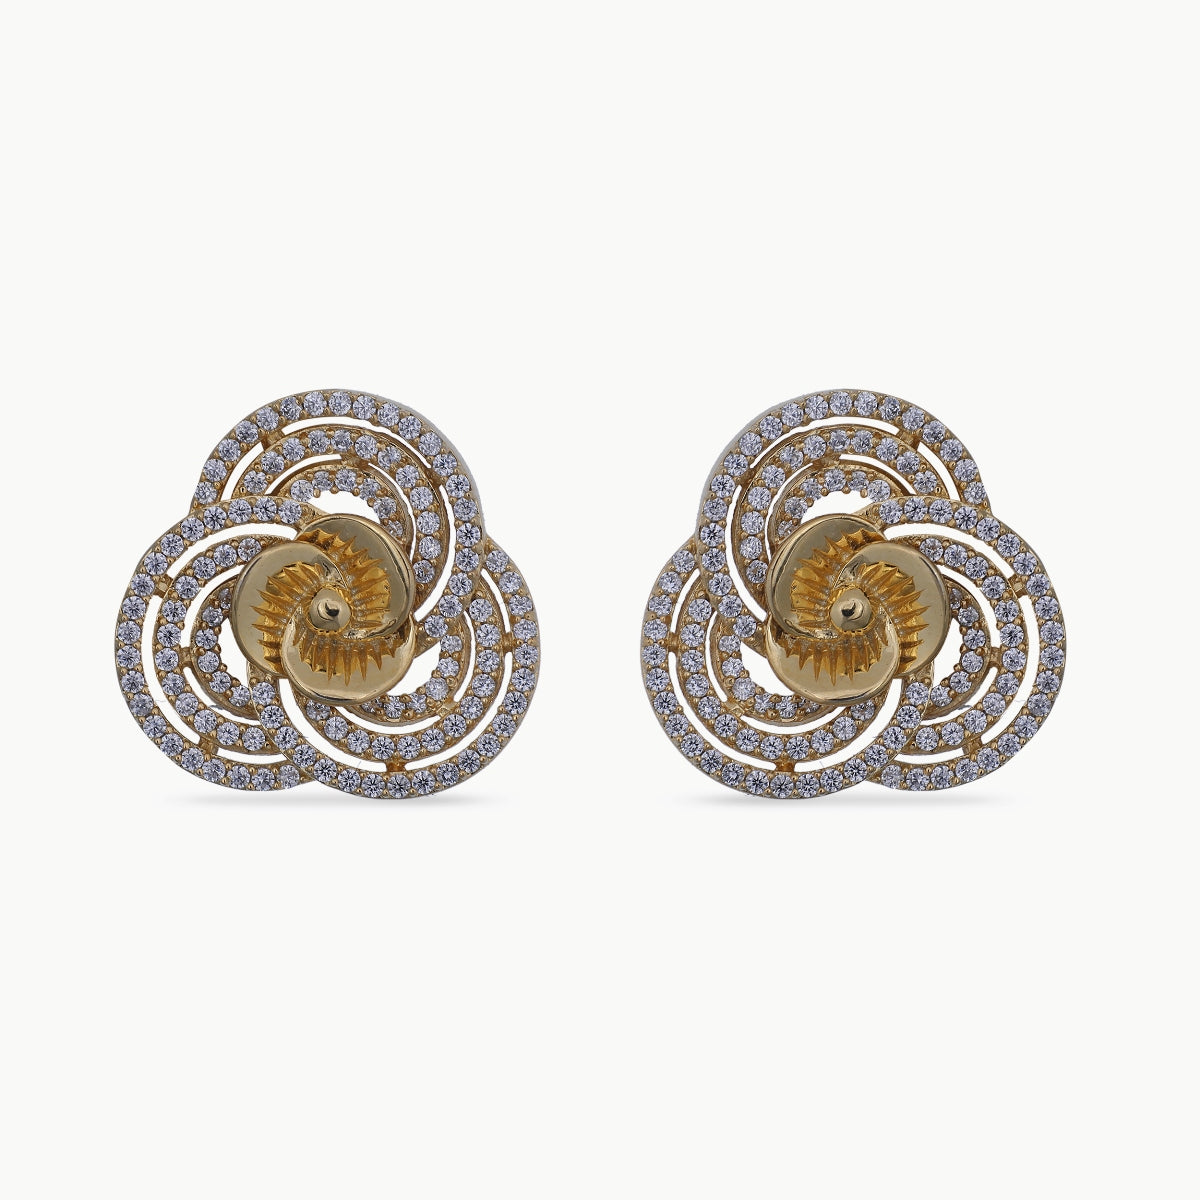 Christina Nakshatra CZ Earrings